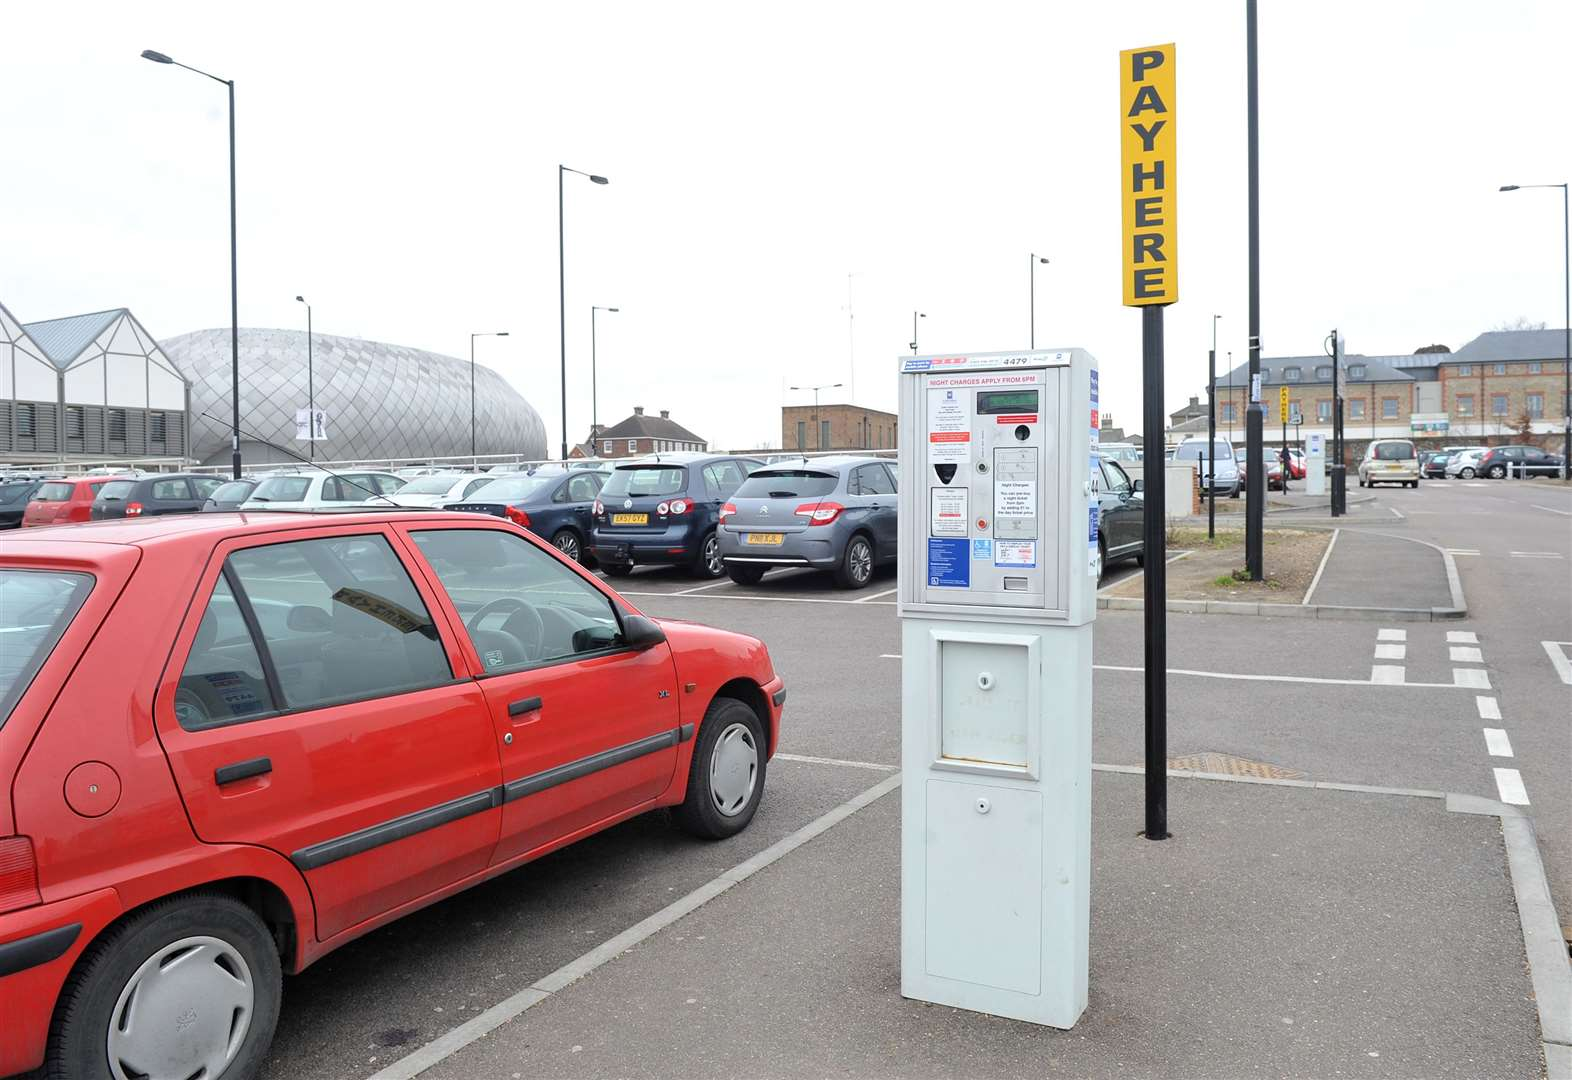 Car parking review for West Suffolk to be launched